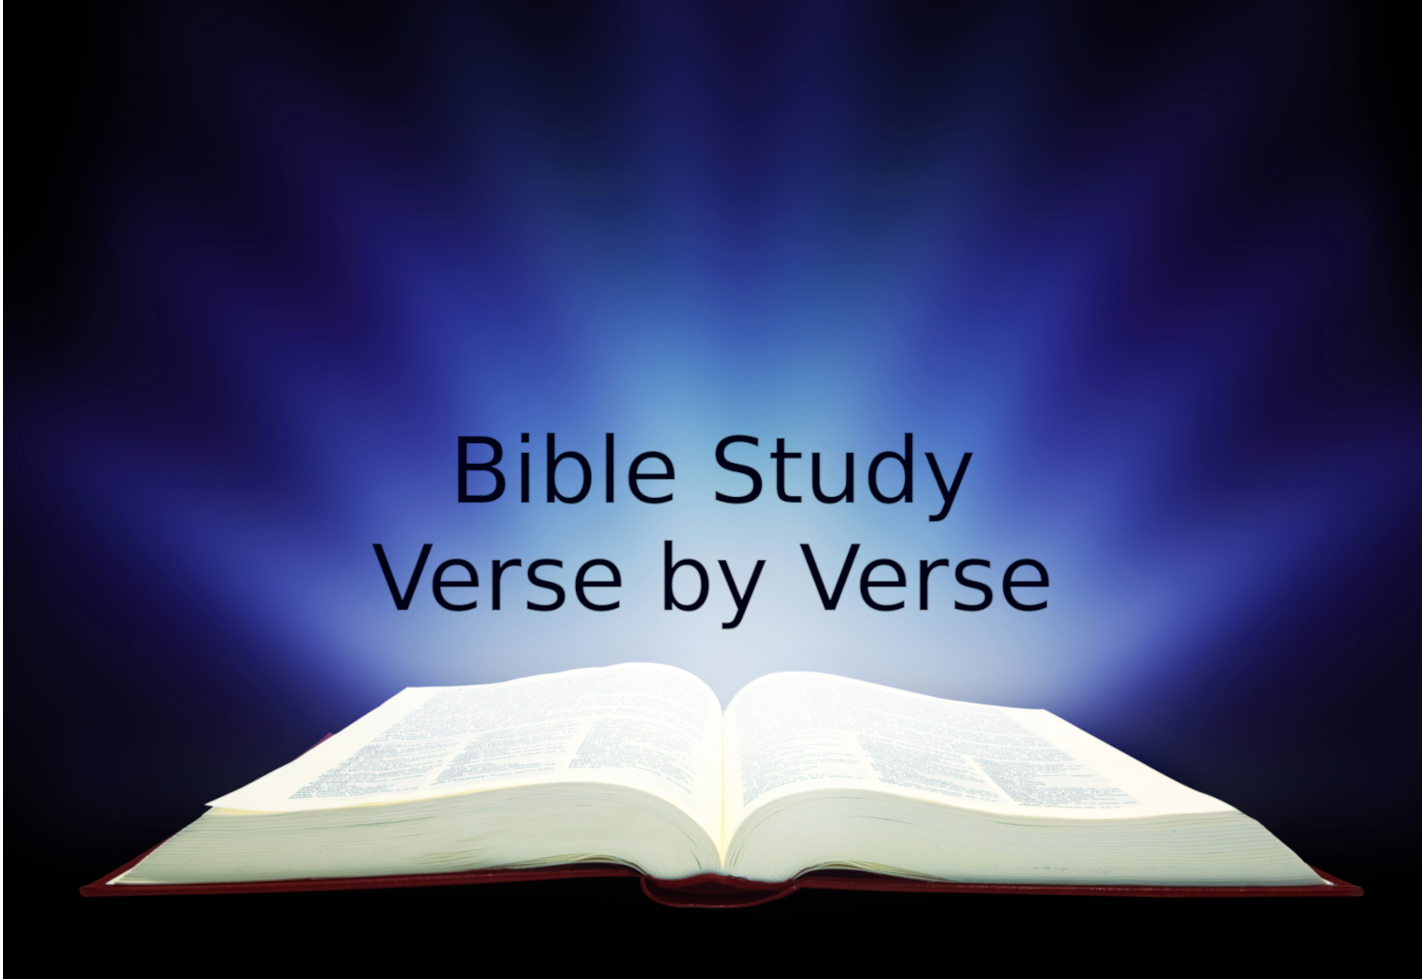 Bible Study Verse by Verse